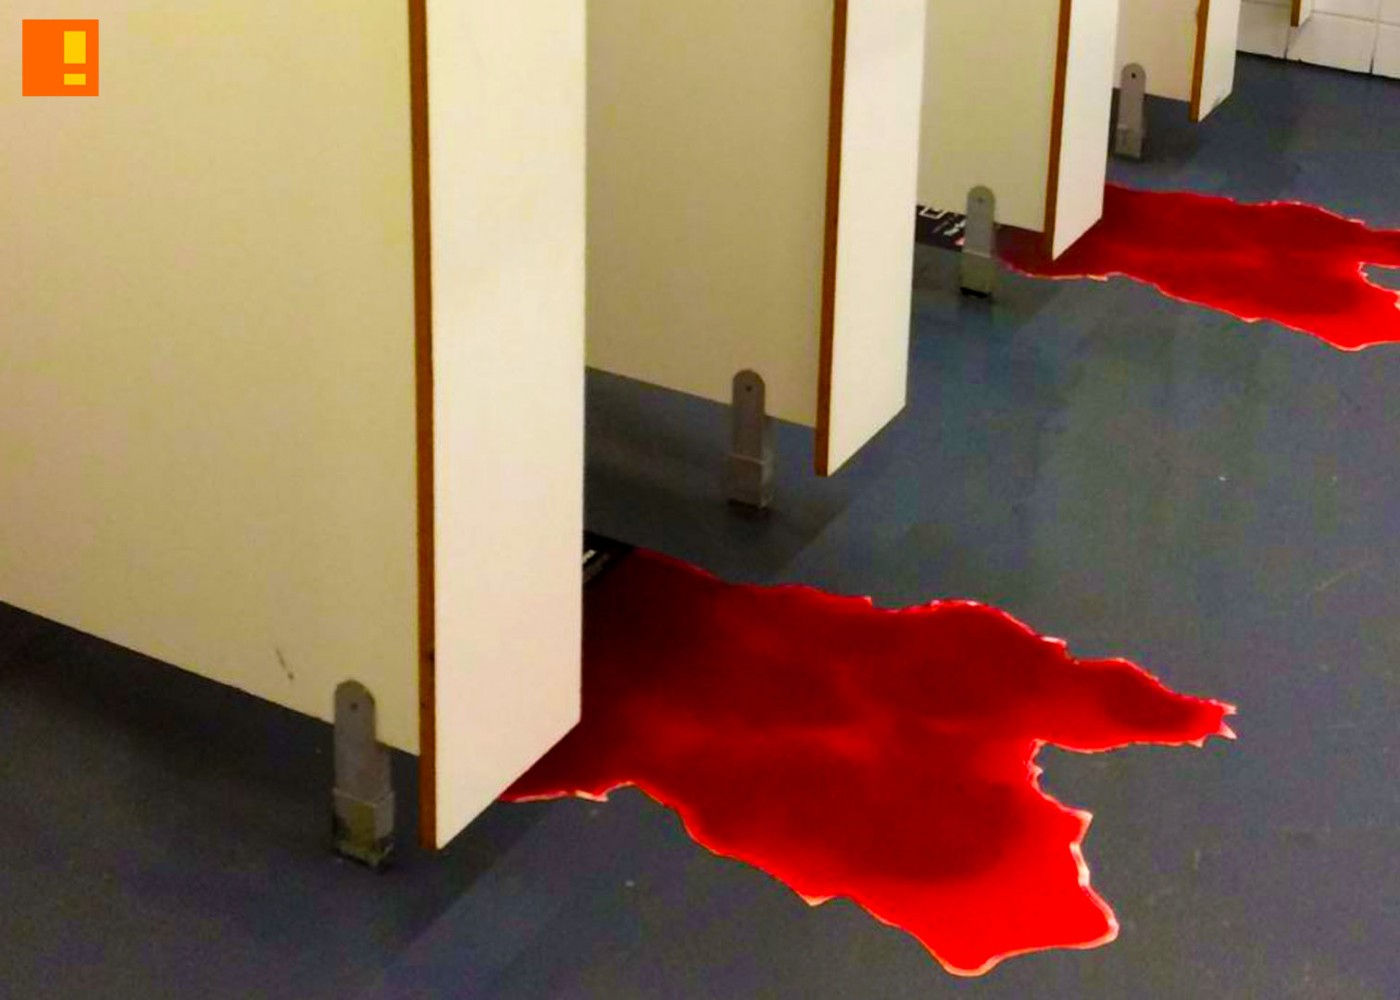 blood loss in the bathroom stall 28 images hoosier With blood loss in a bathroom stall